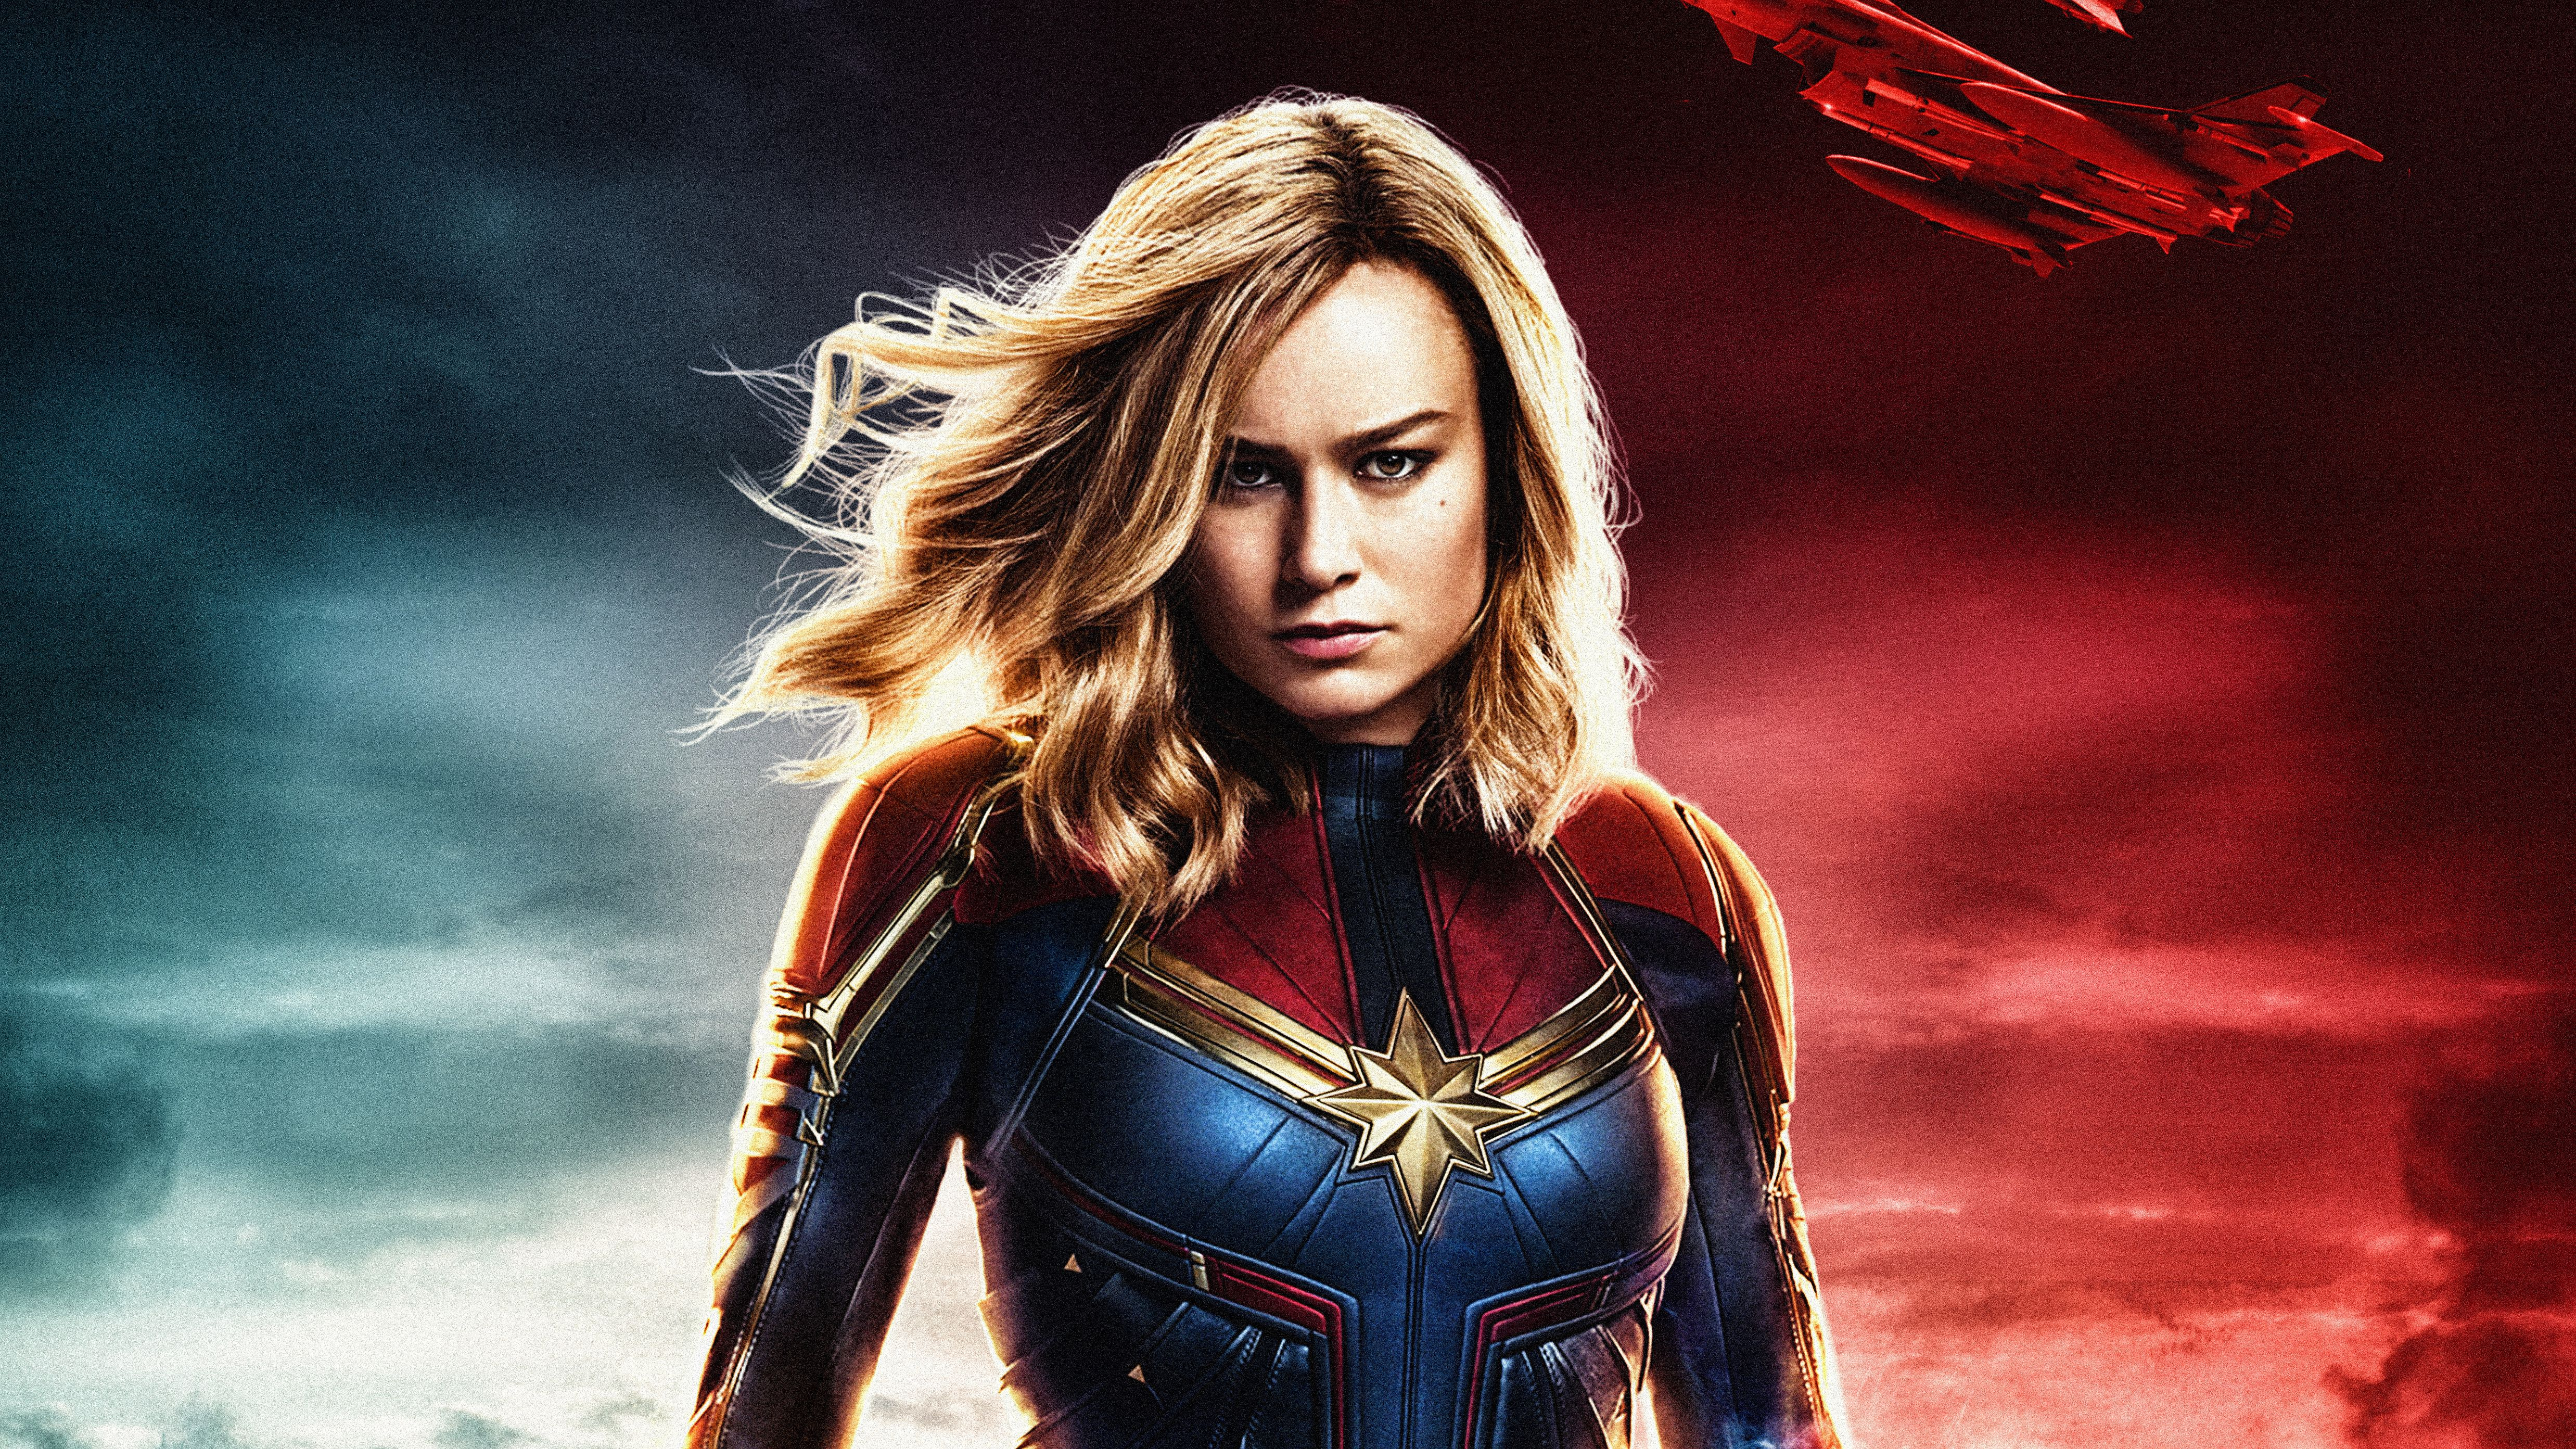 4950x2784 Captain Marvel 4k Ultra HD Wallpaper | Background Image ...